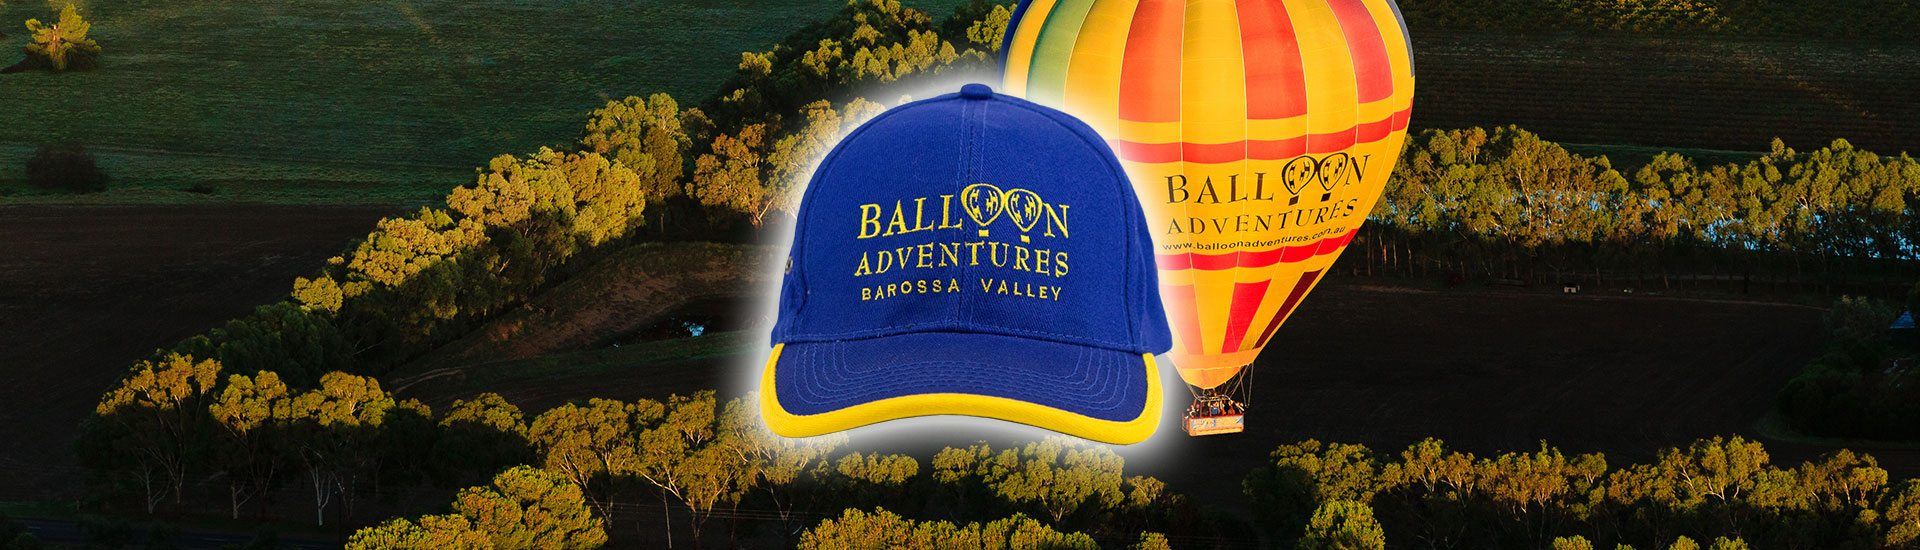 balloon-adventures-flights-over-the-barossa-valley-merchandise-blue-cap